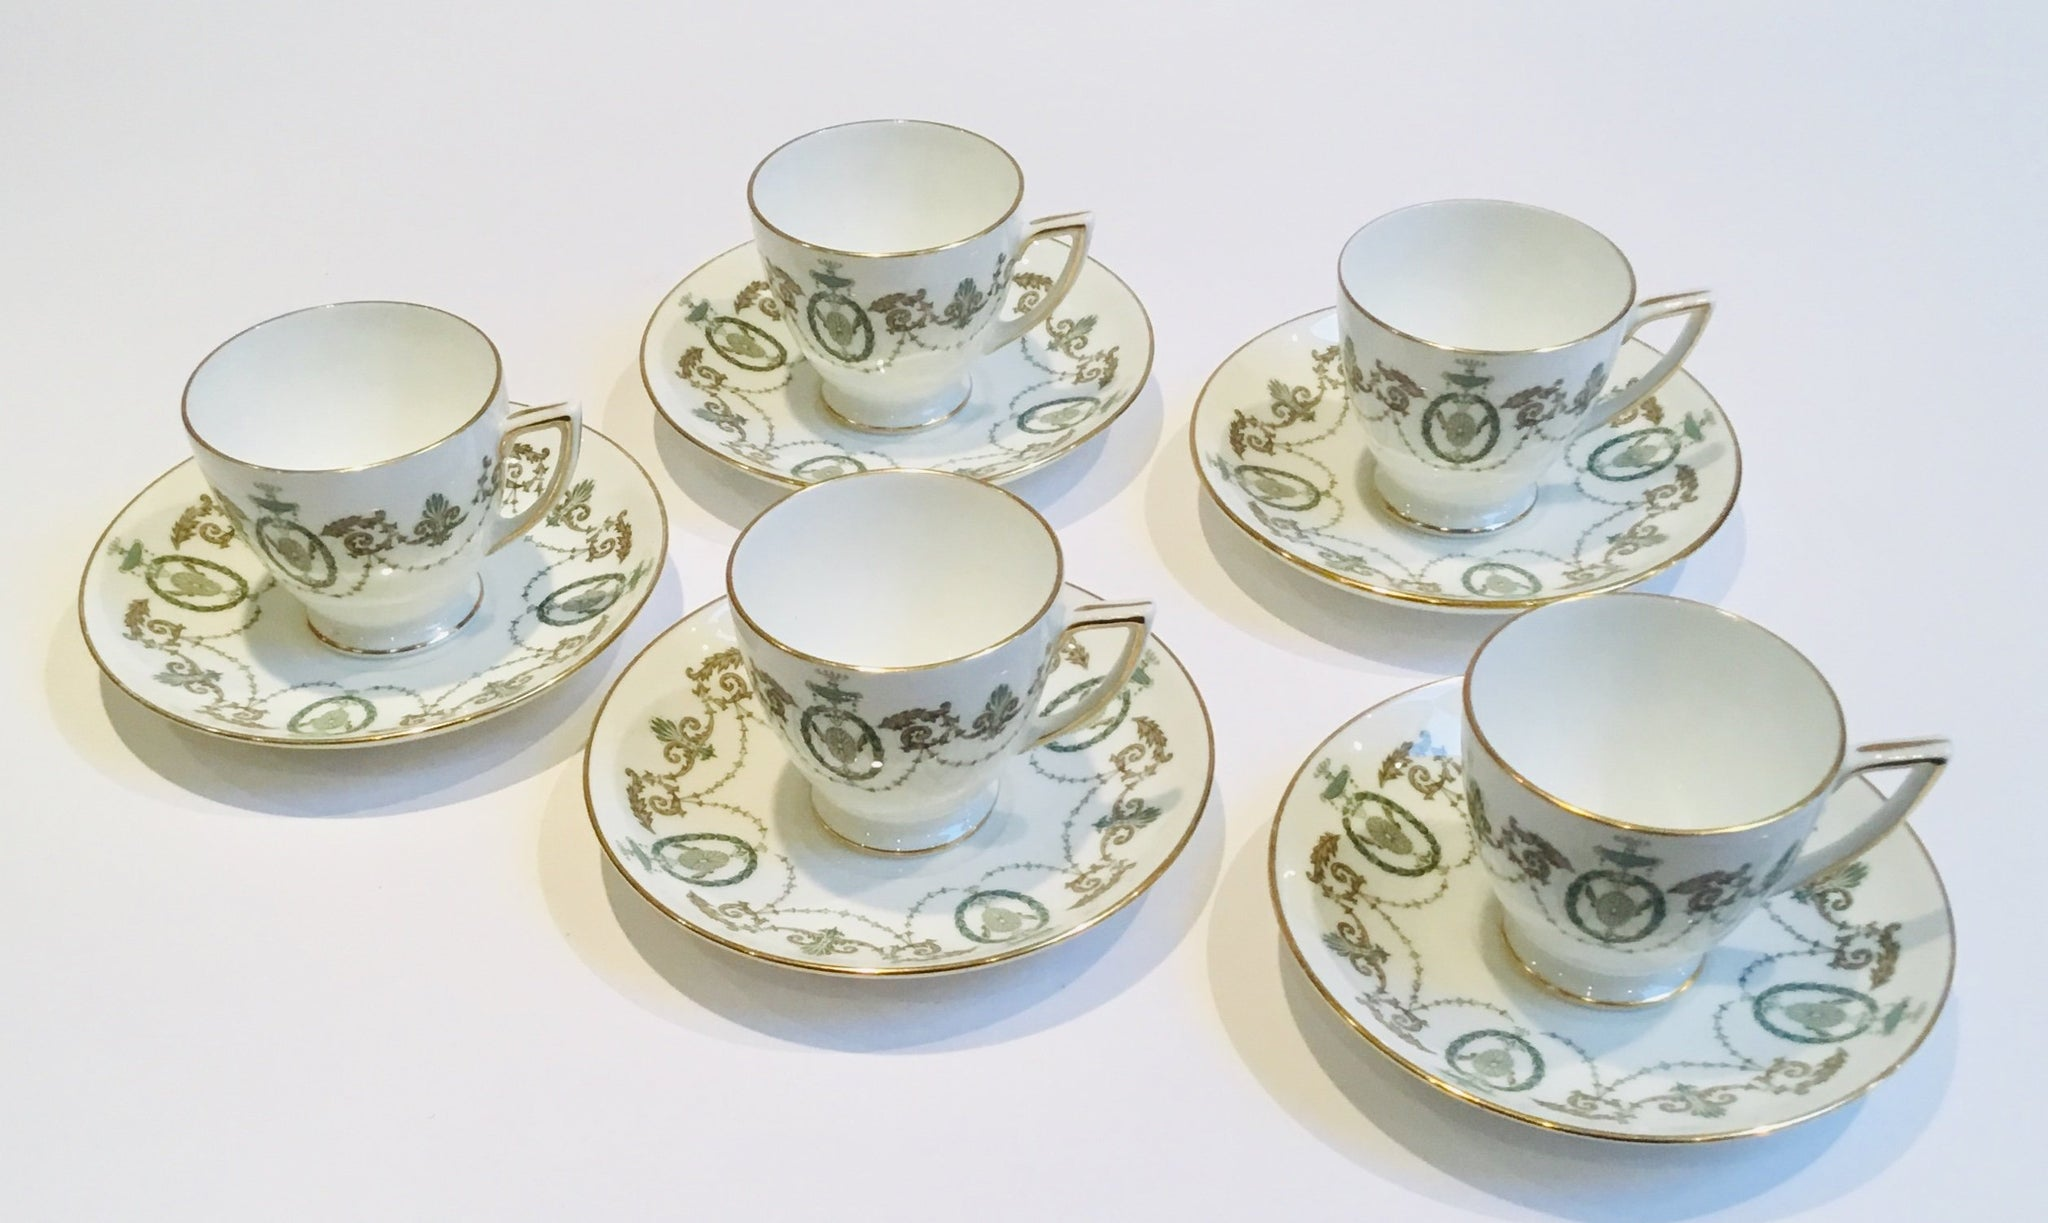 Minton China Pattern Adam - Demitasse Cups/Saucers